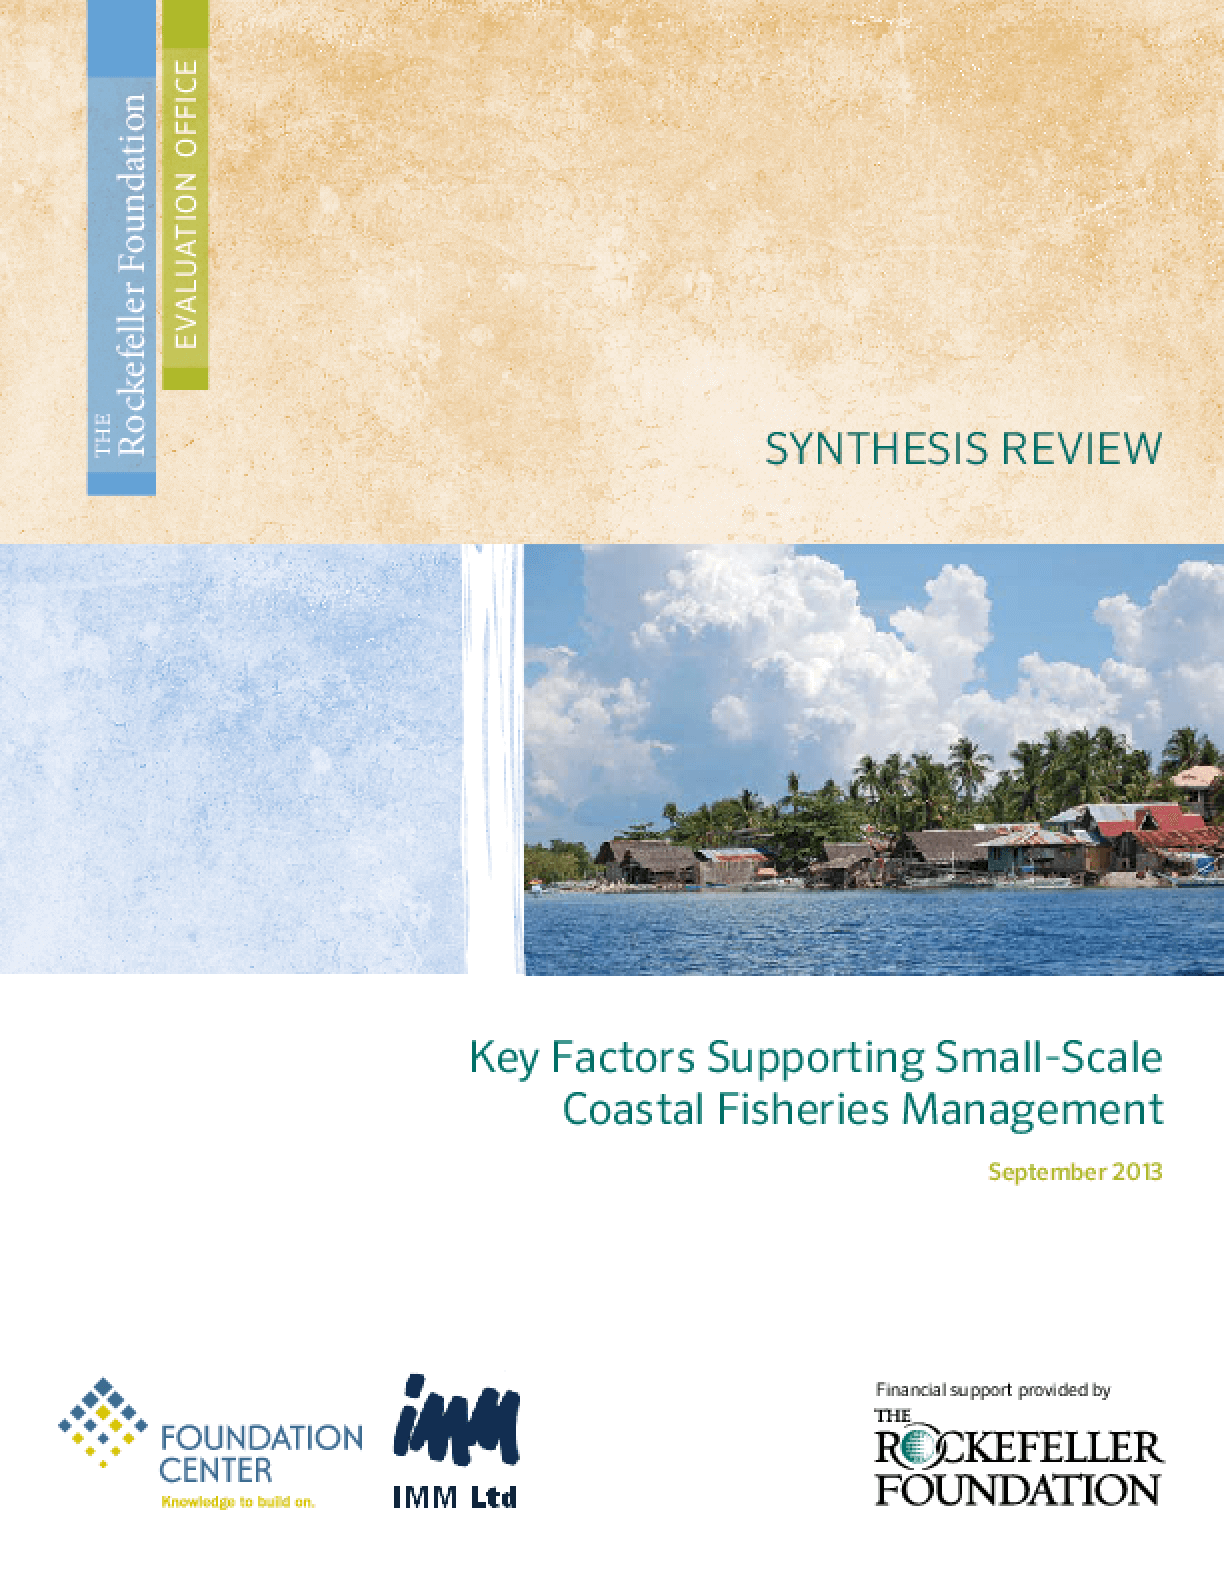 Key Factors Supporting Small-Scale Coastal Fisheries Management